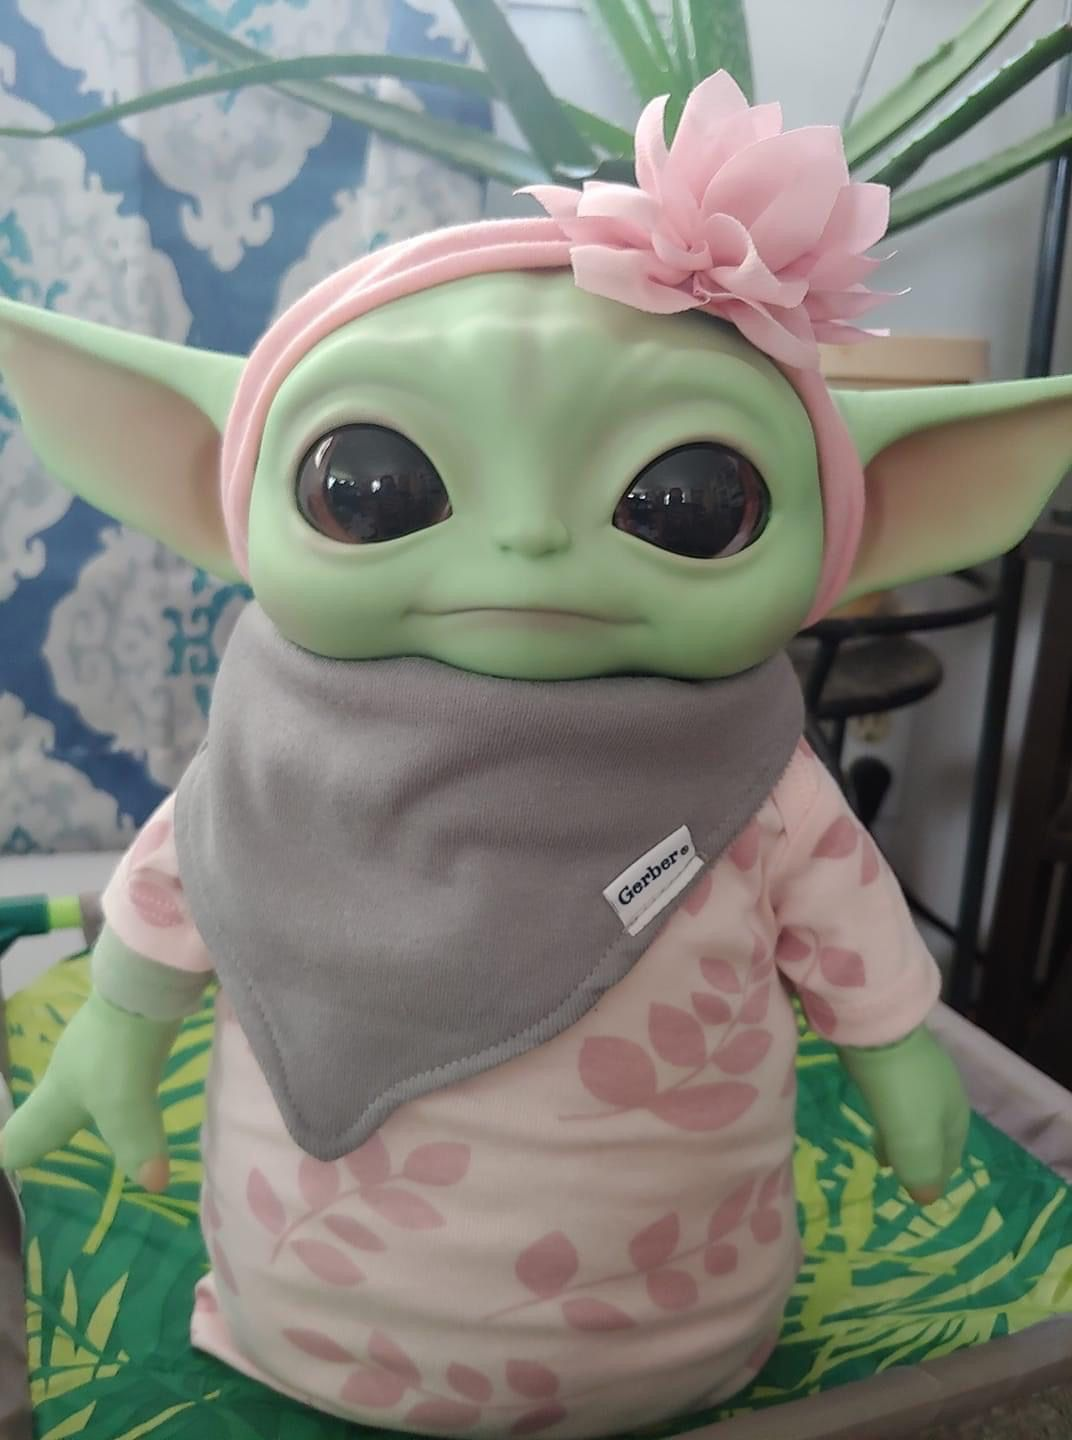 Pin by Chereignisamazing on Baby Yoda in 2020 Lunch box